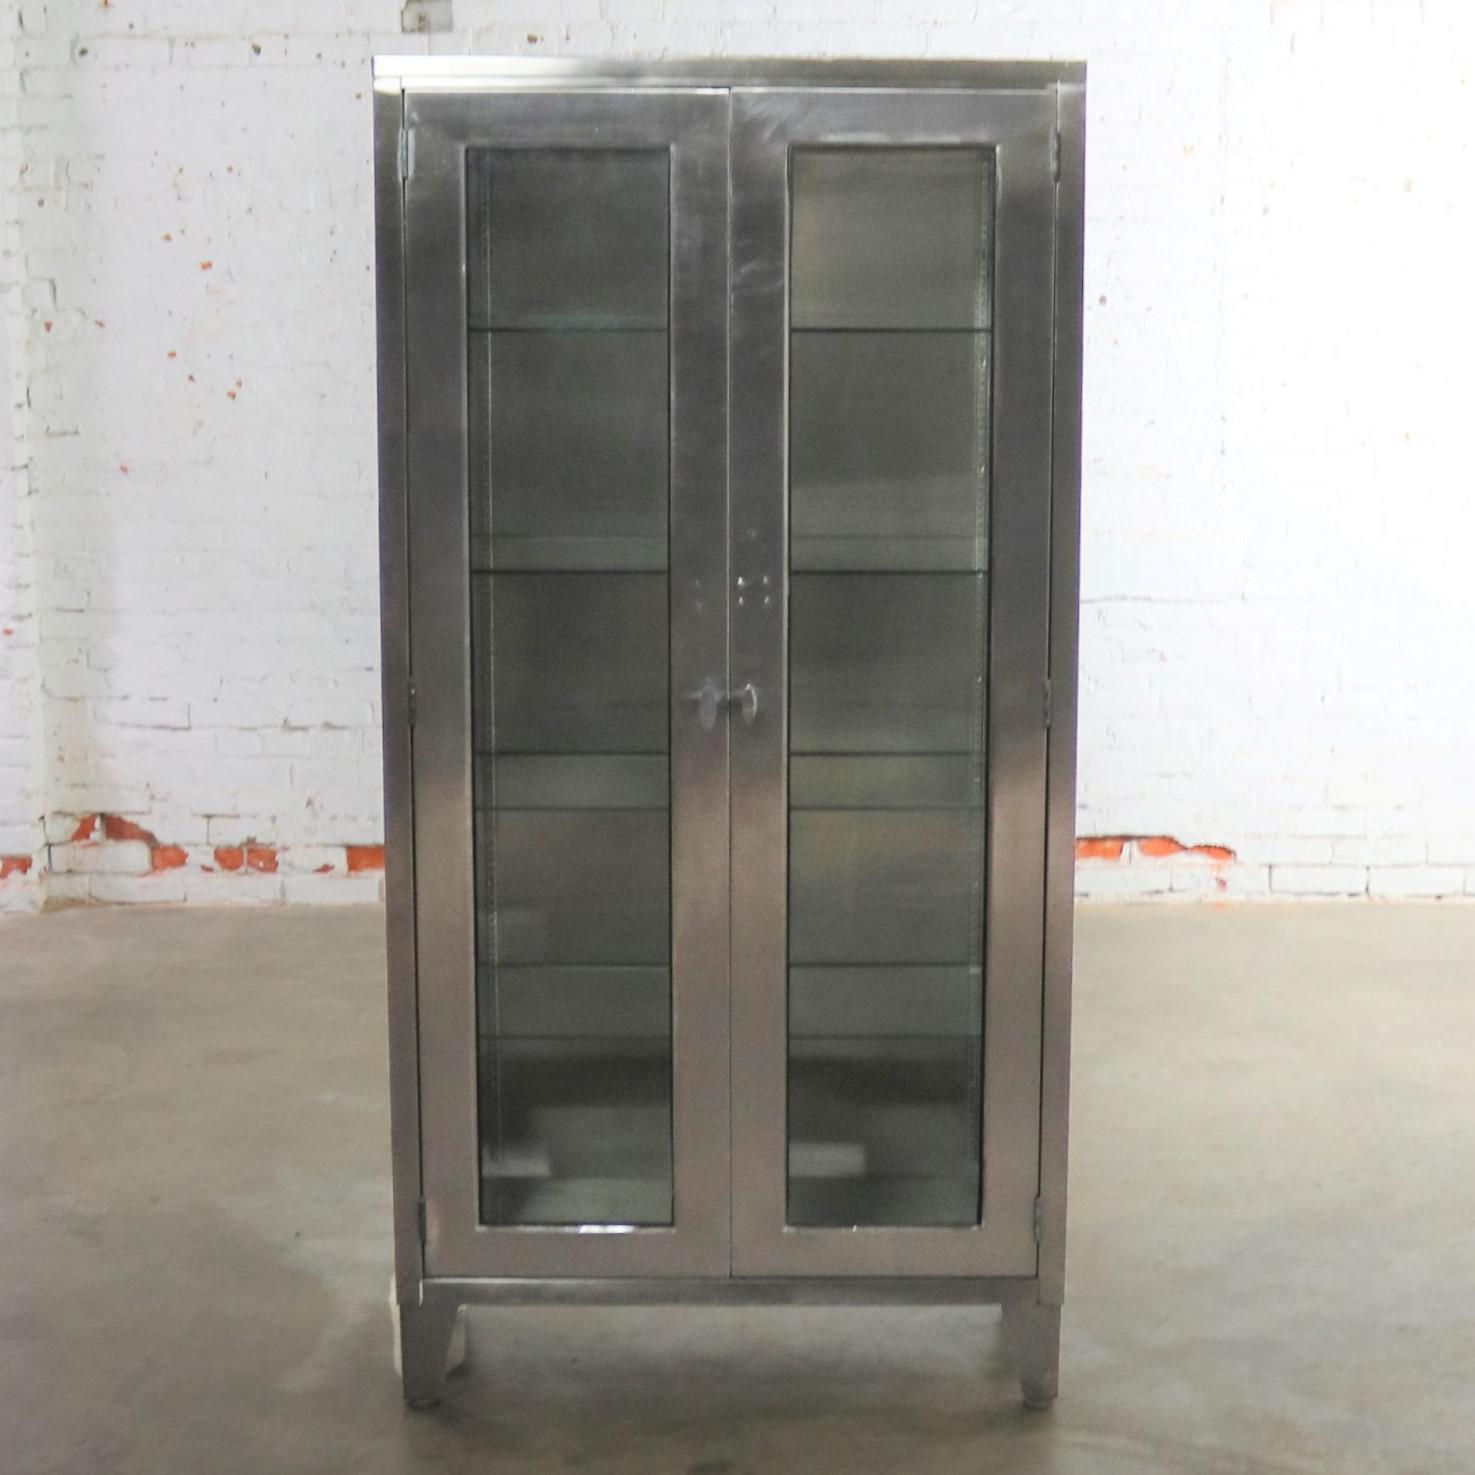 Vintage Stainless Steel Industrial Display Apothecary Medical Cabinet With  Glass Doors And Shelves   Image 2